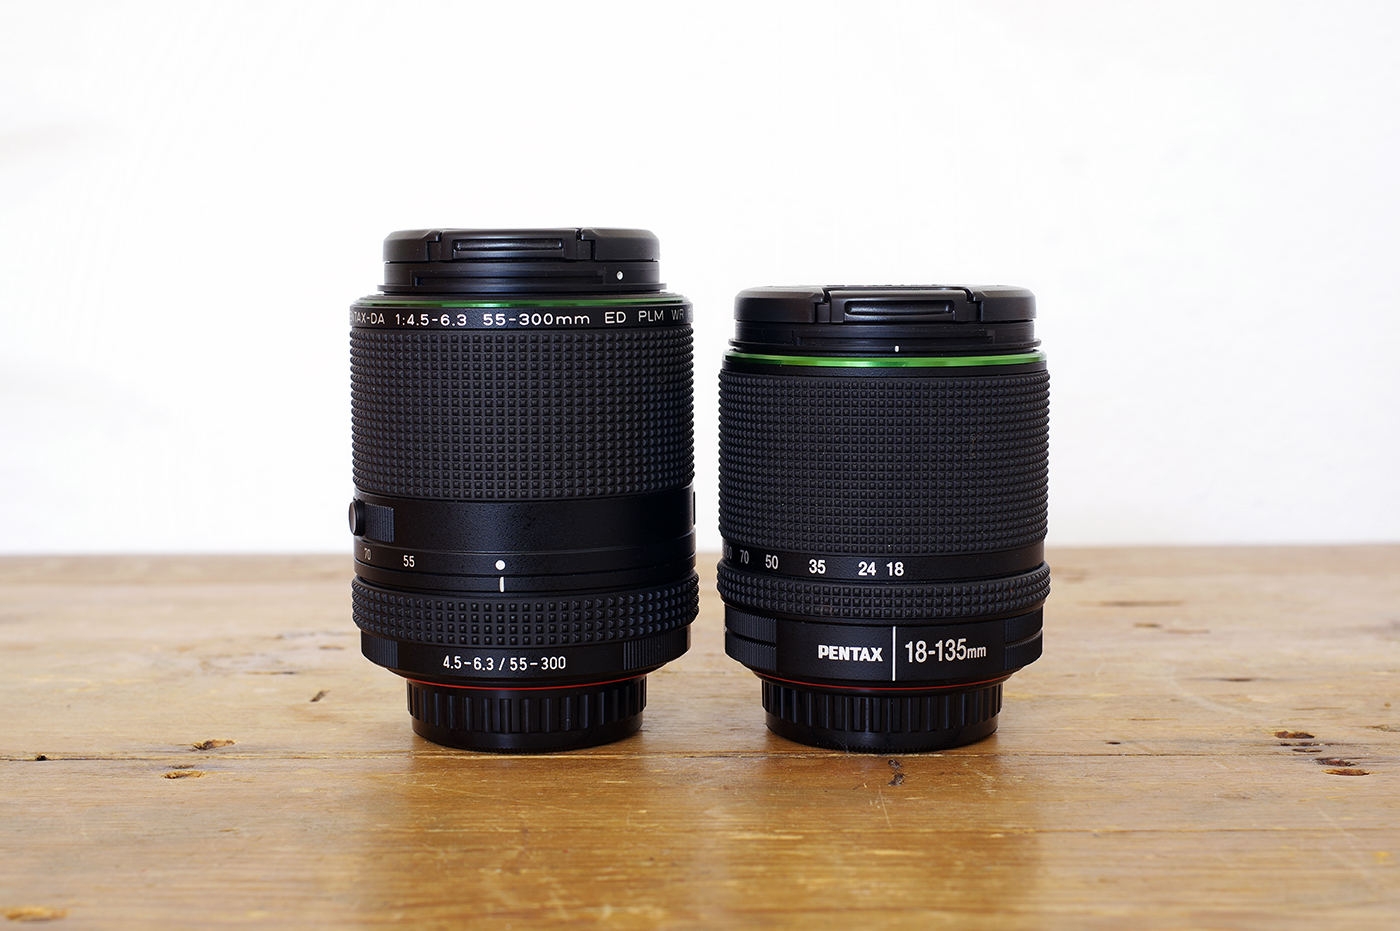 The 55-300mm PLM is slightly longer and wider than the DA 18-135mm WR.